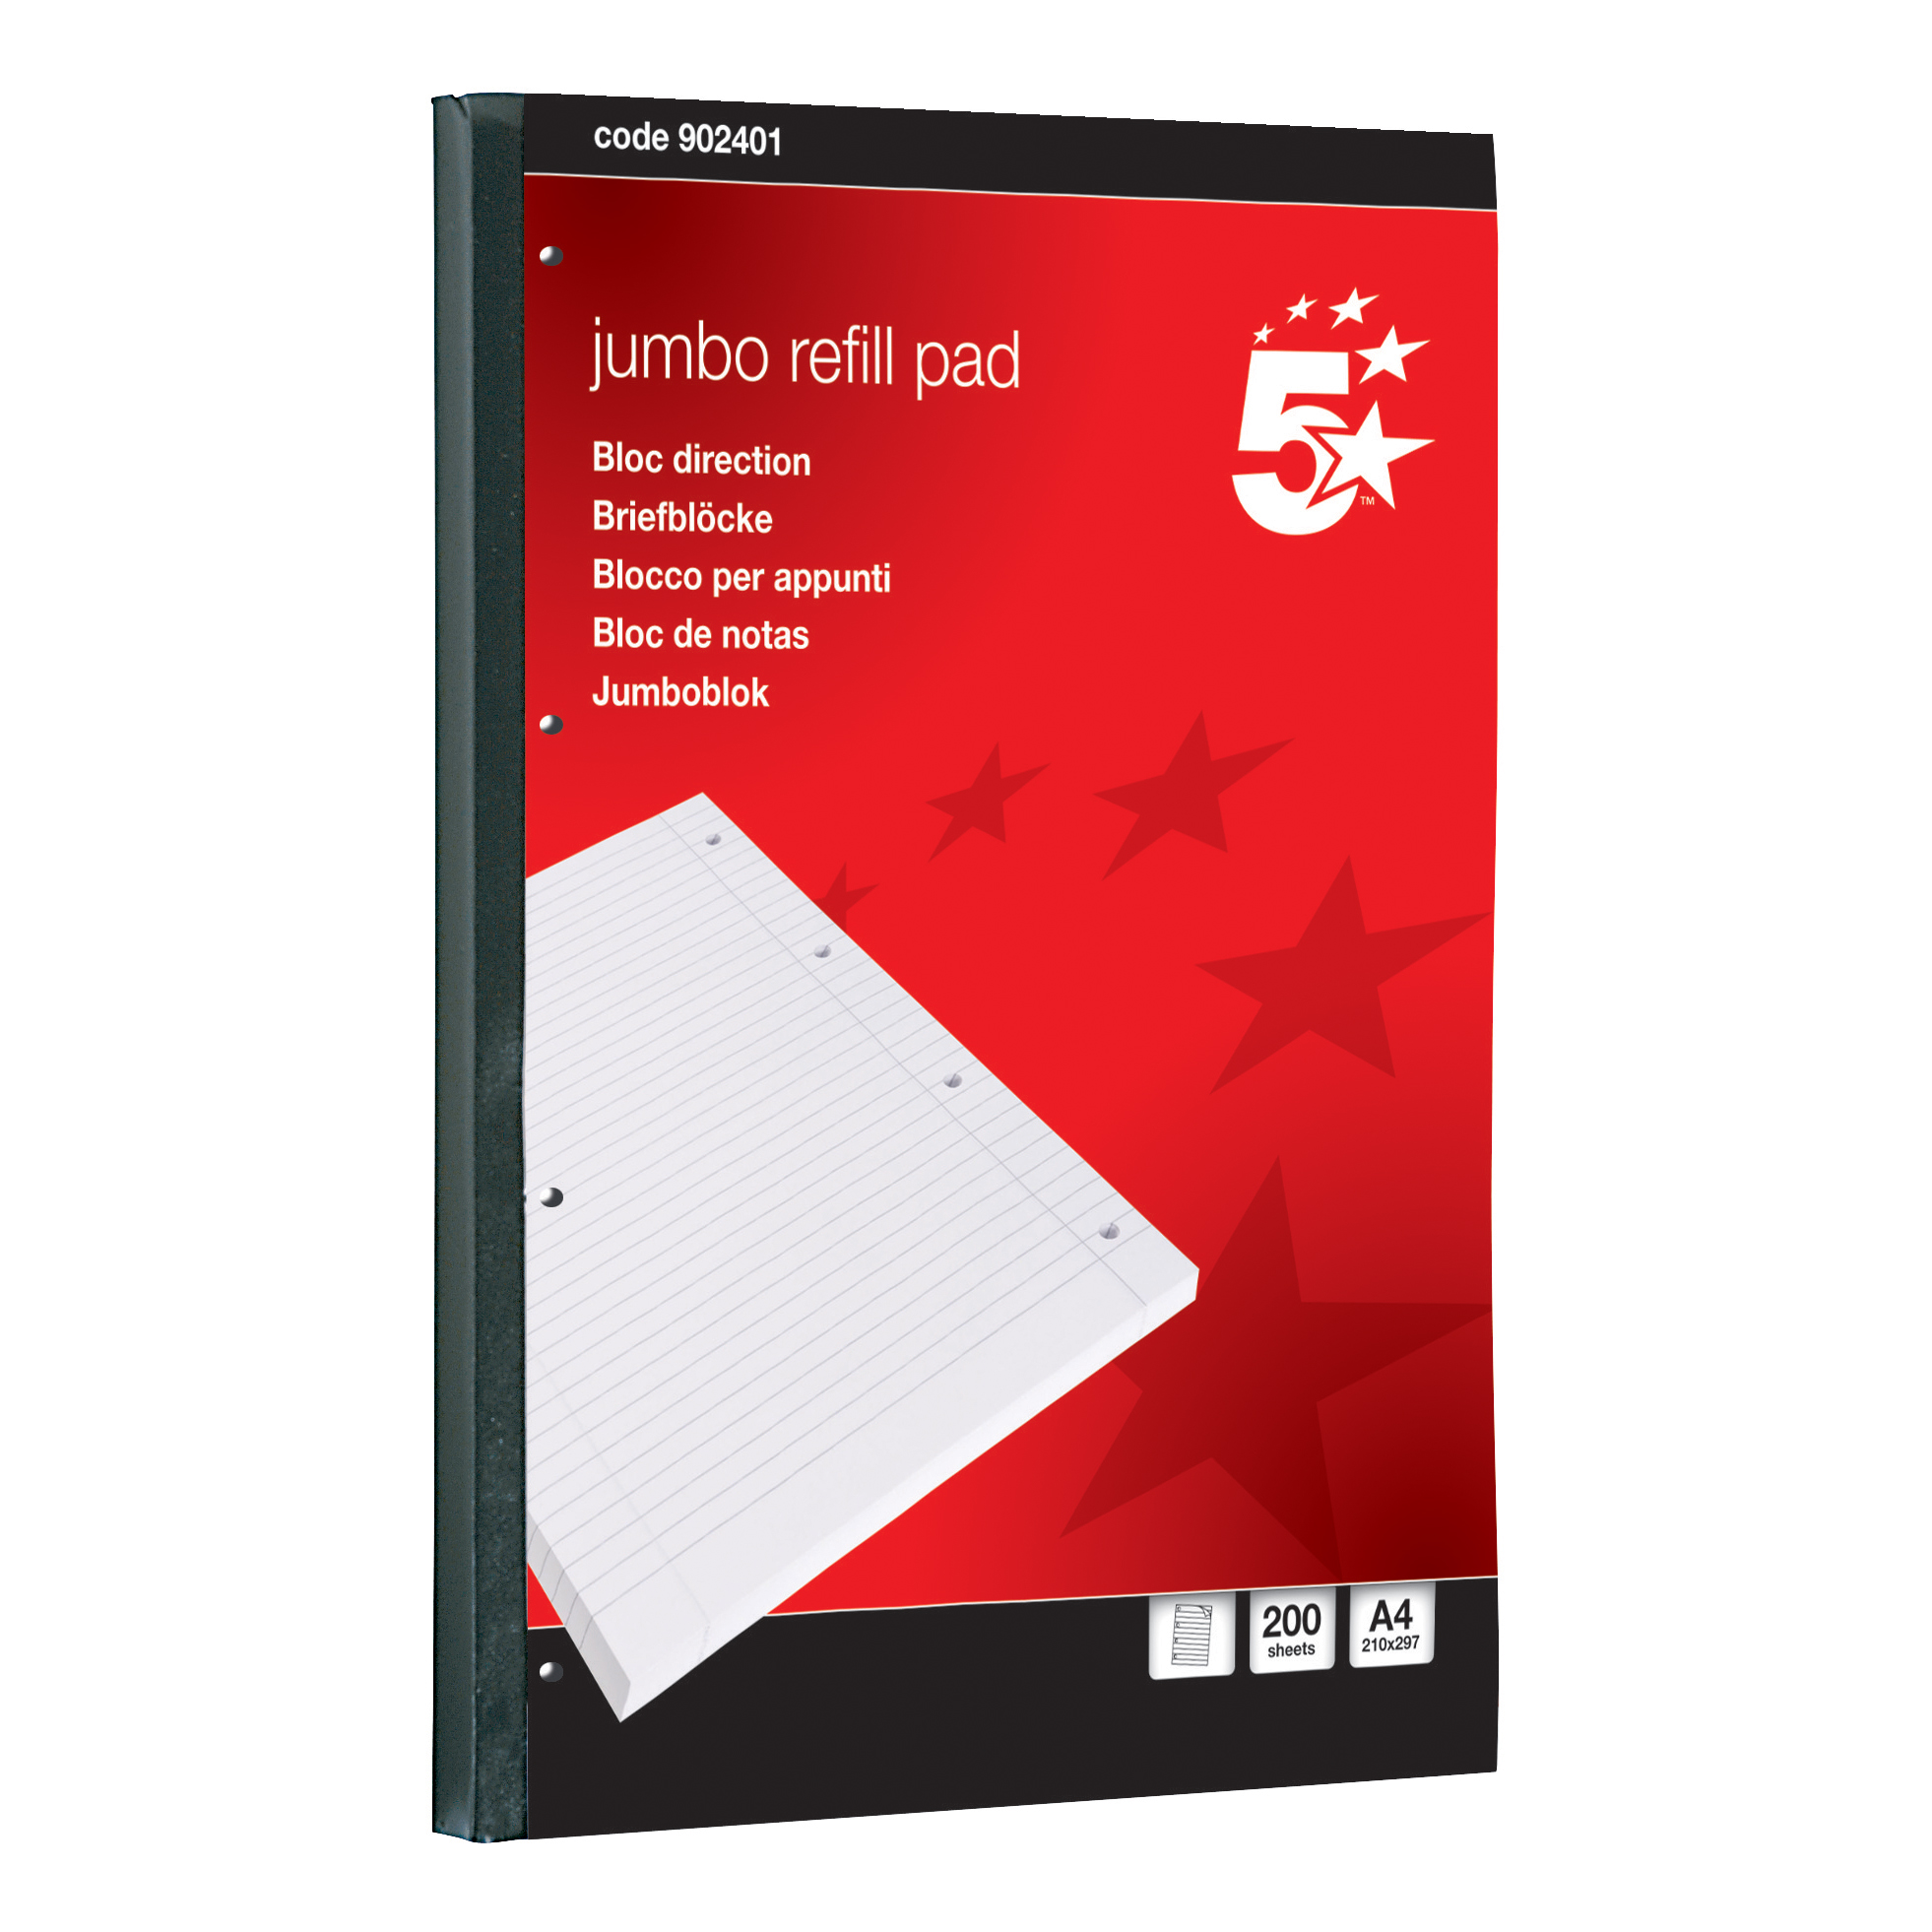 Refill Pads 5 Star Office Jumbo Refill Pad Sidebound 60gsm Ruled Margin Punched 4 Holes 400pp A4 Red Pack 4